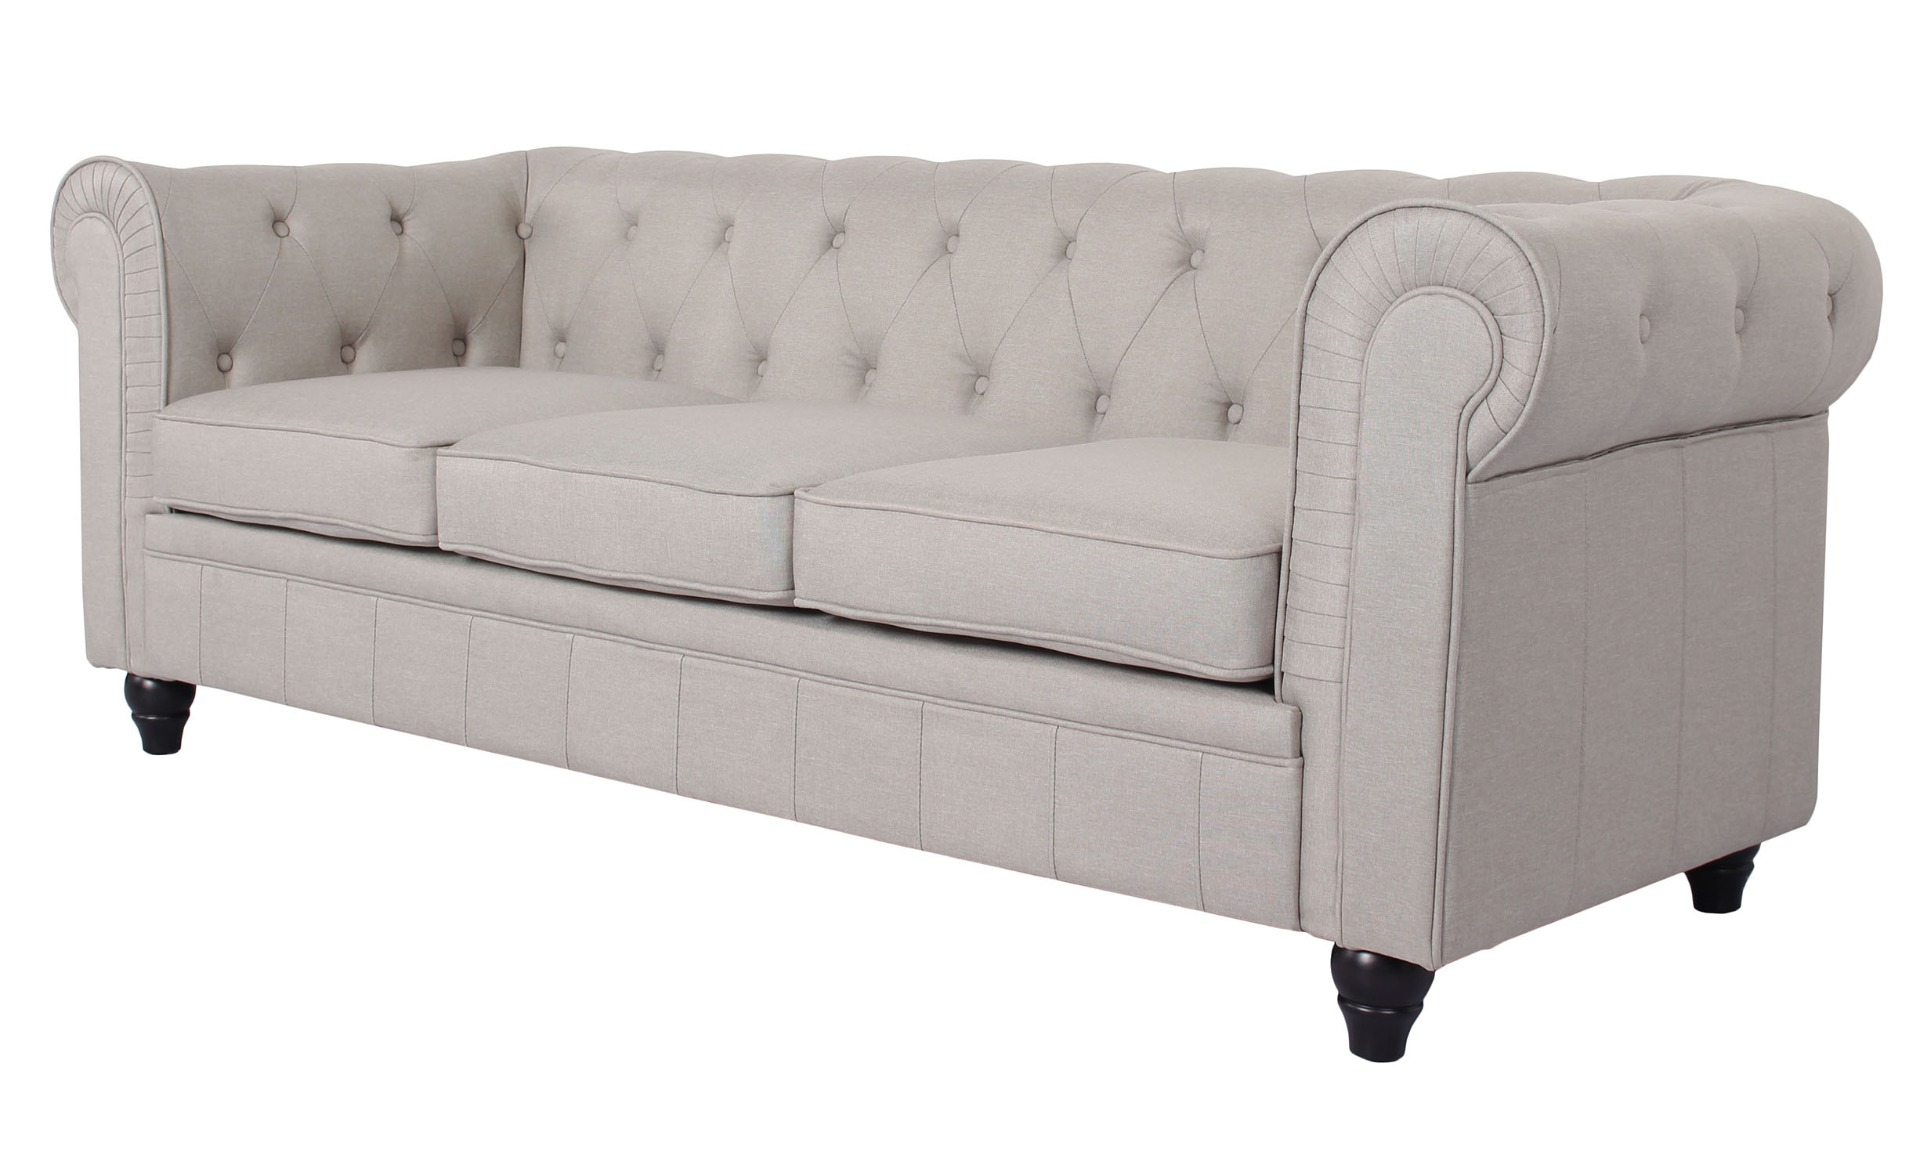 Grand canapé 3 places Chesterfield effet Lin Beige